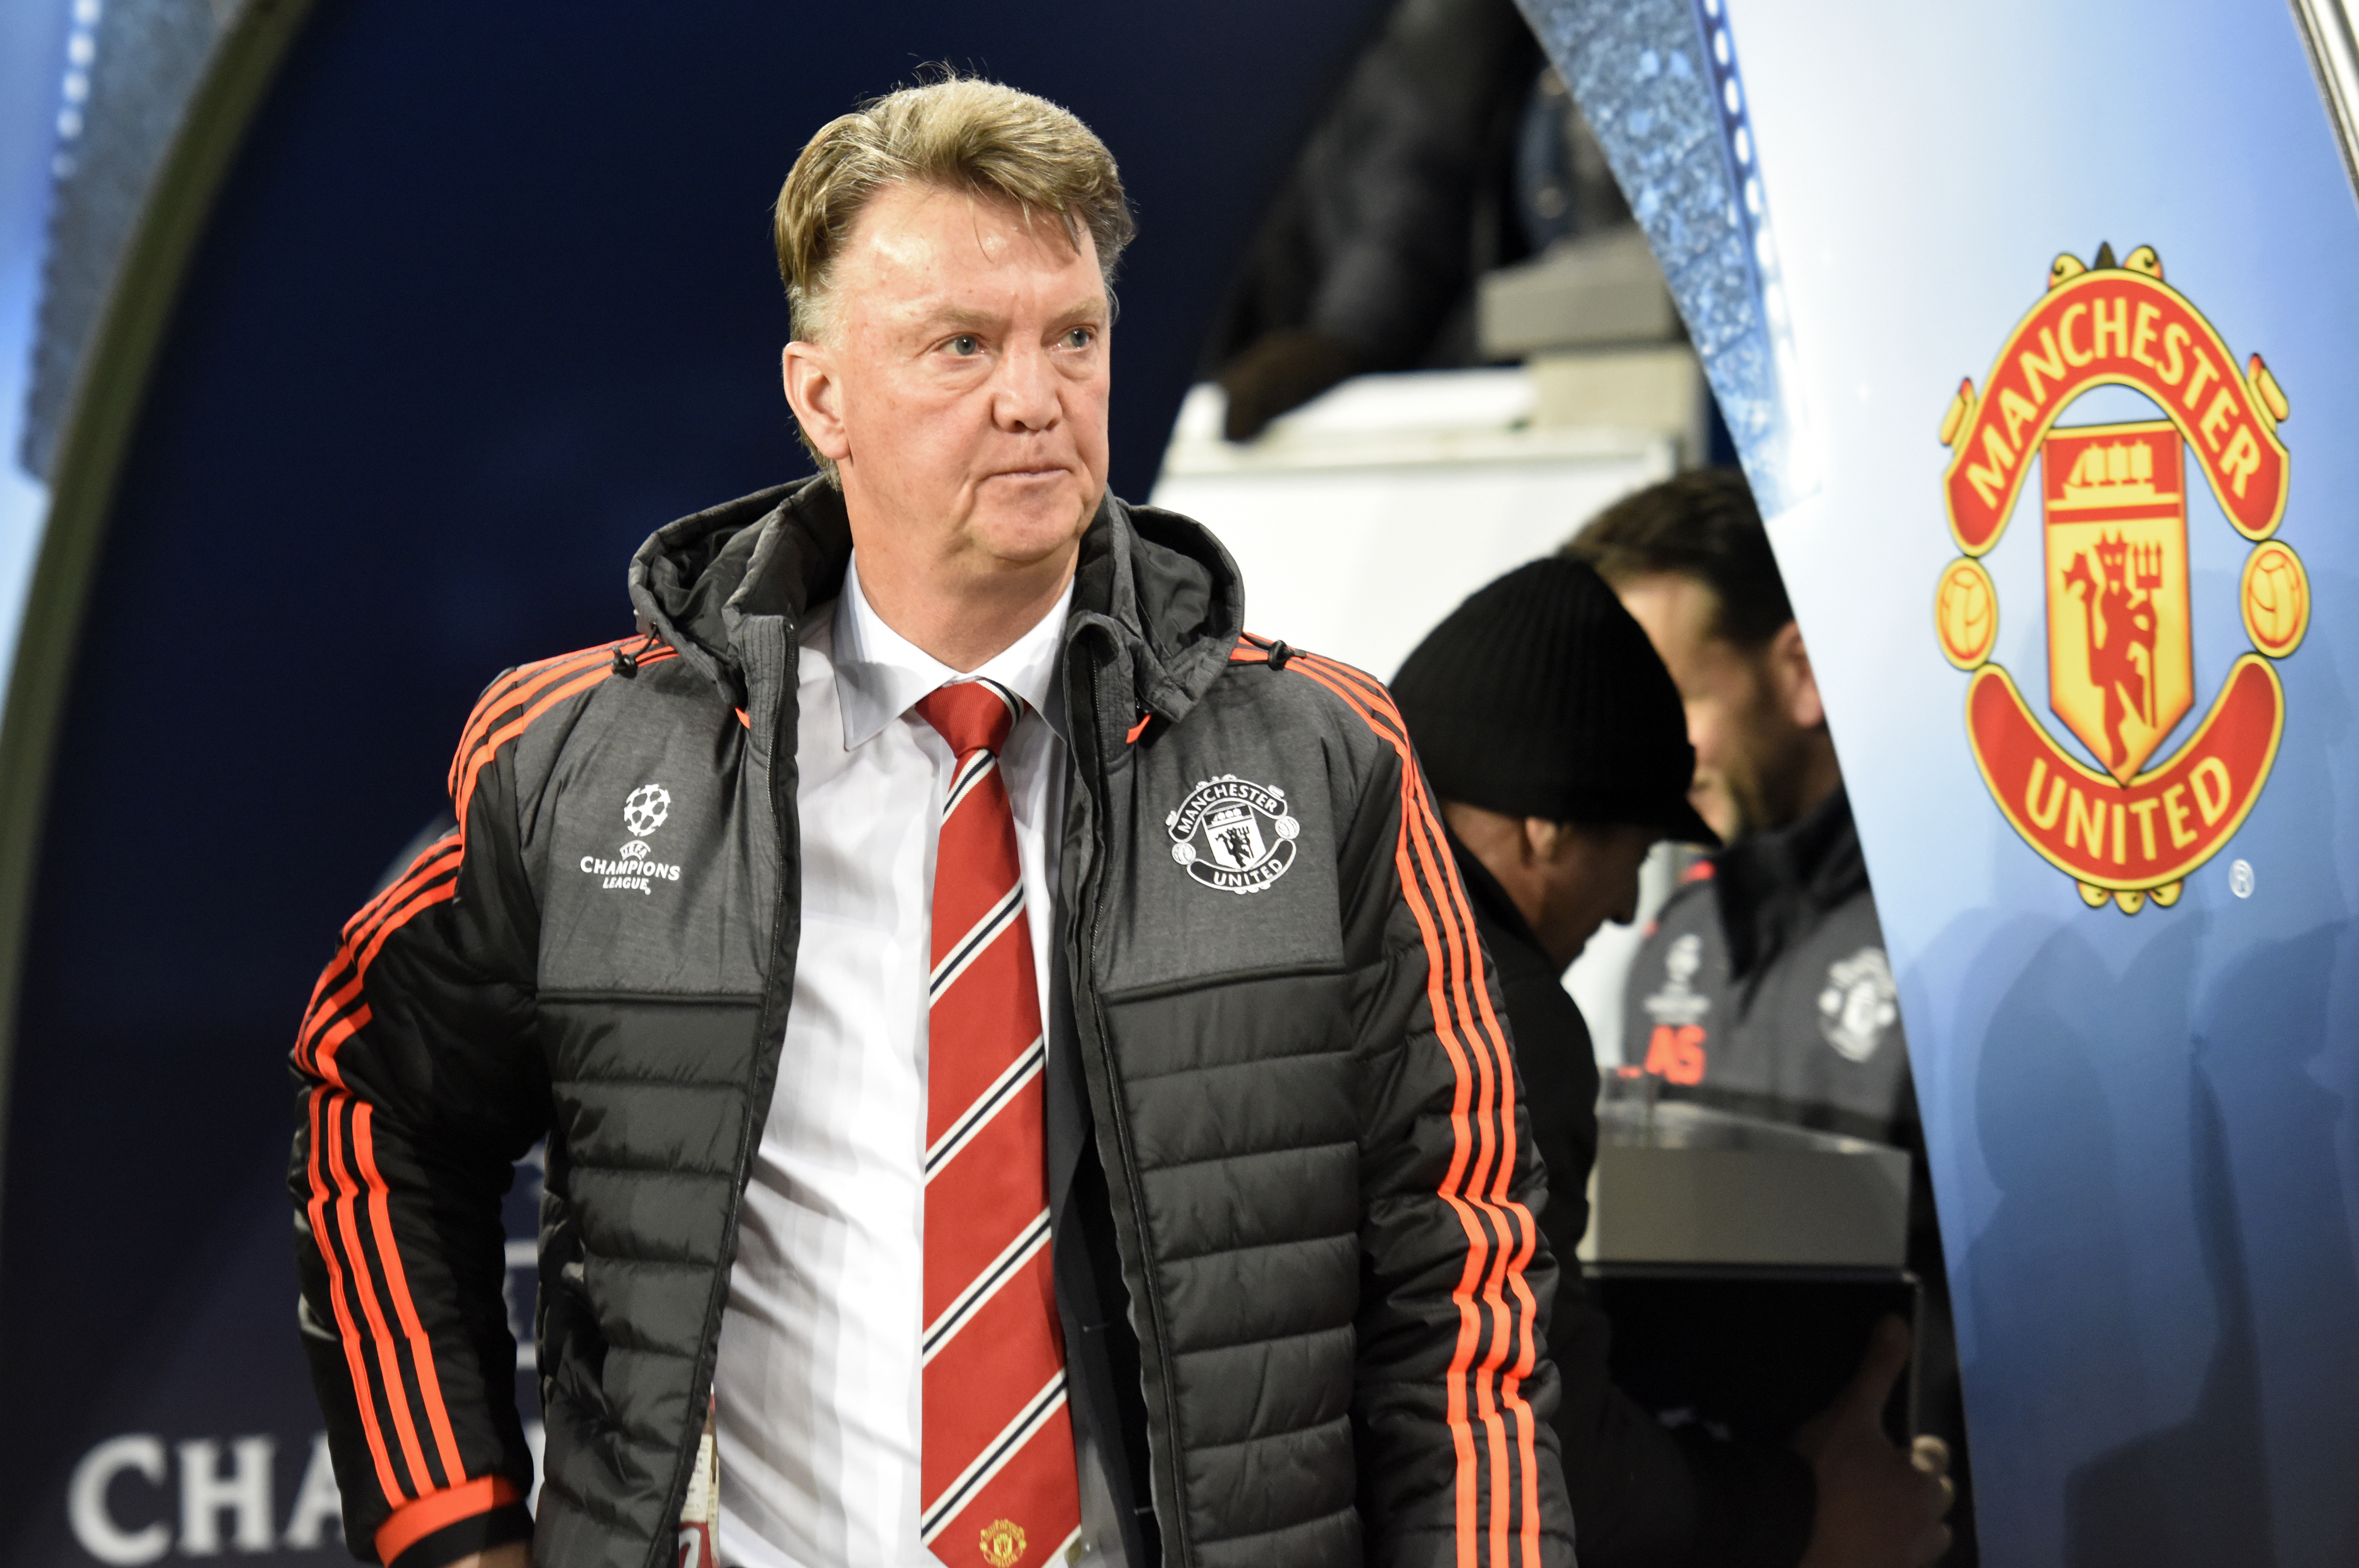 Manchester United manager Louis Van Gaal before the match at Volkswagen-Arena in Wolfsburg on Tuesday, December 8, 2015. Photo: Reuters